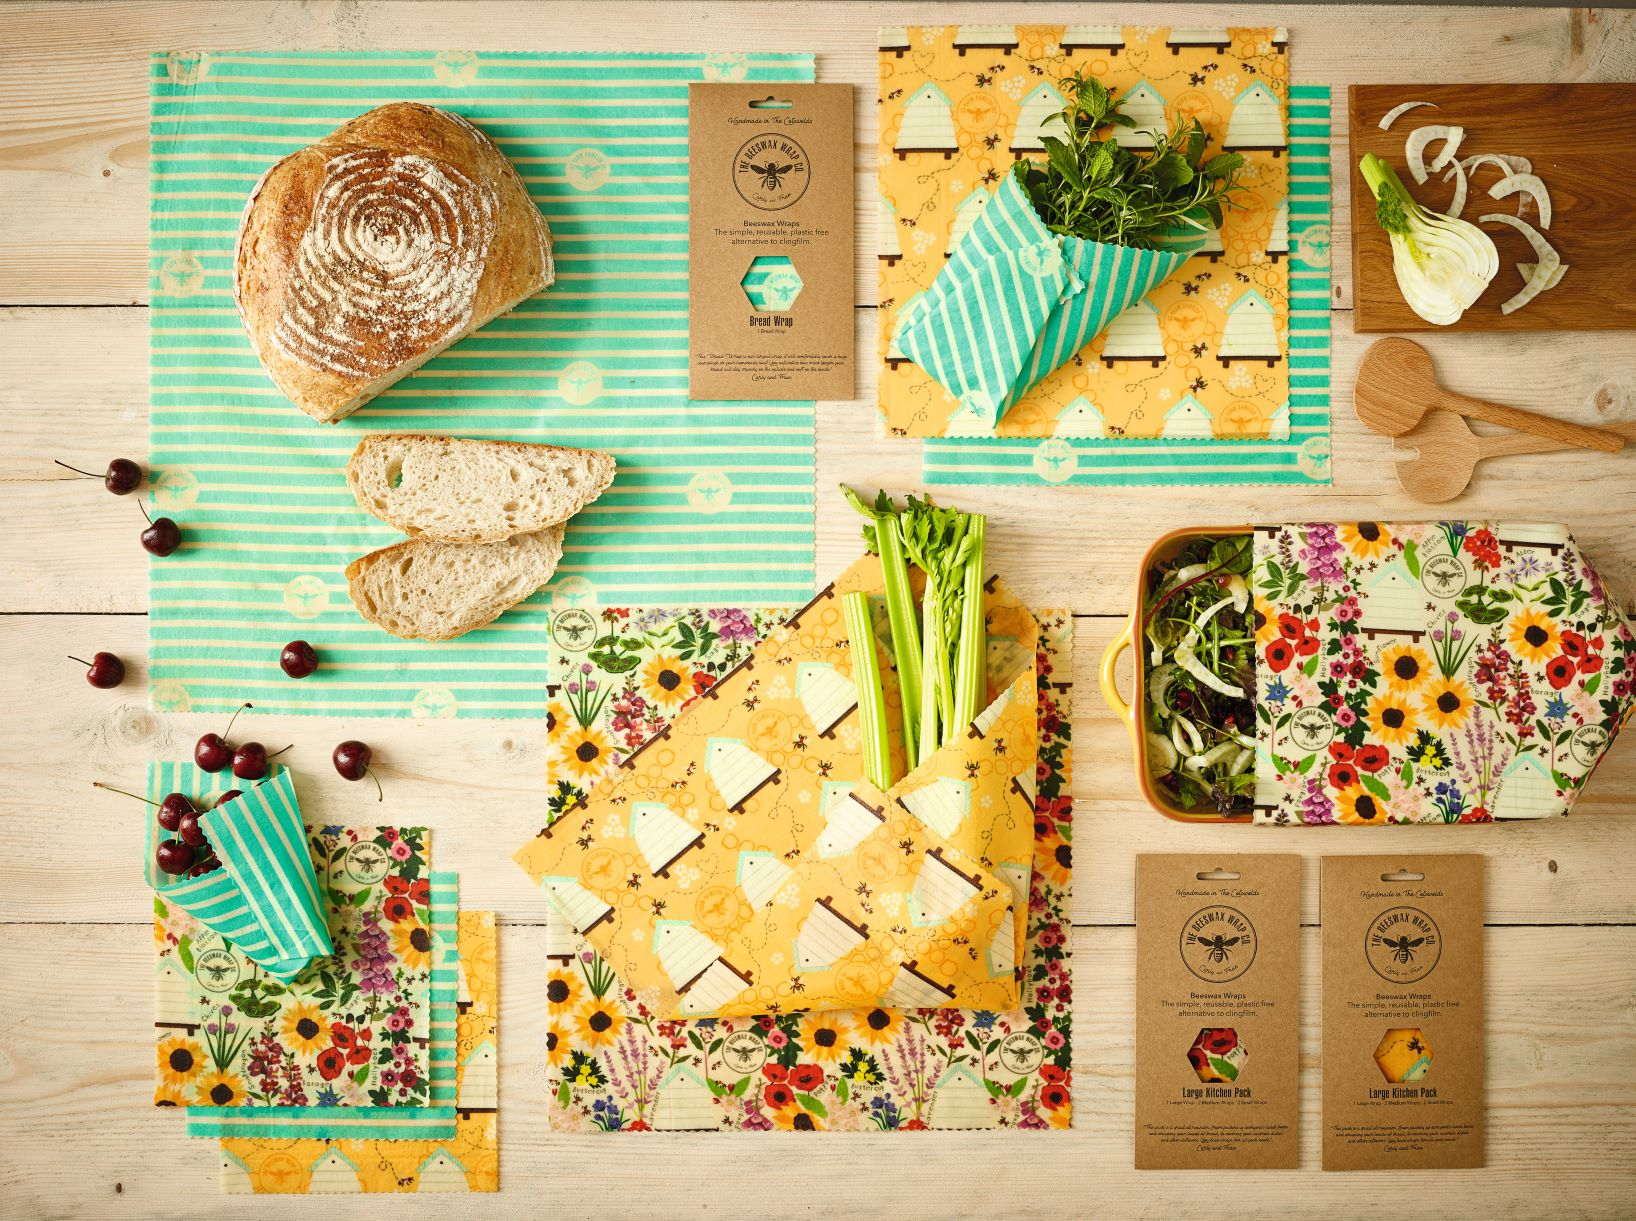 Photography: The Beeswax Wrap Company